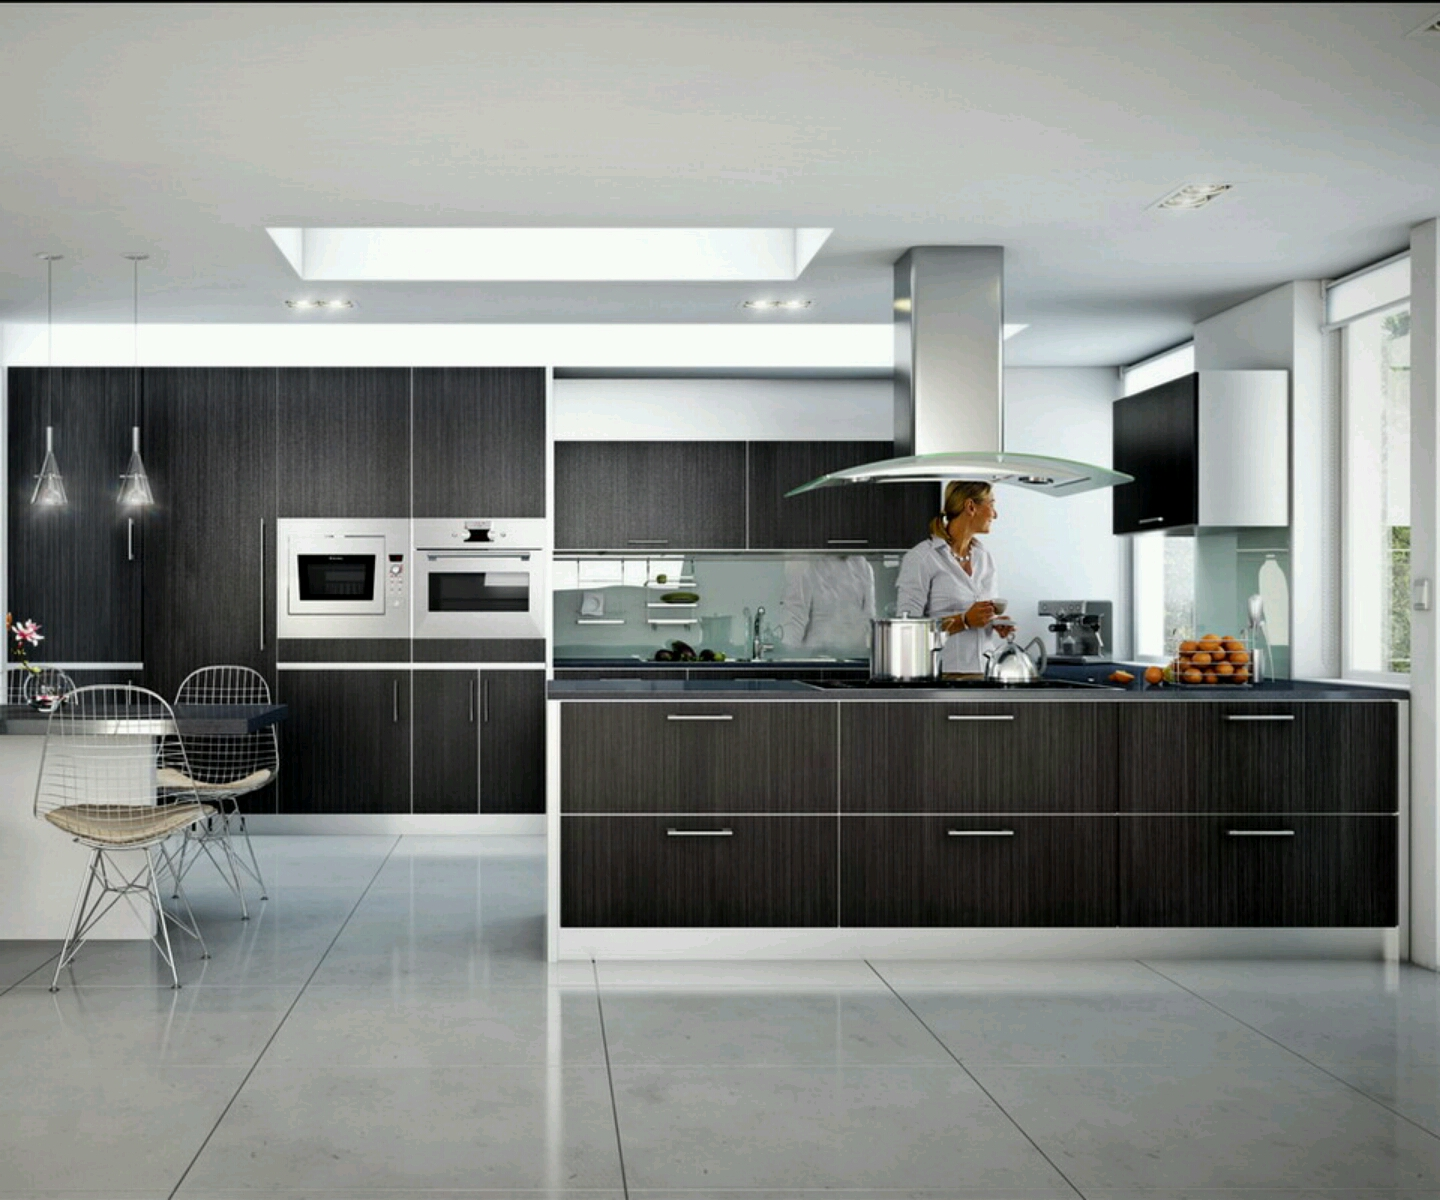 Modern Mini Kitchen Design: 30 Modern Kitchen Design Ideas